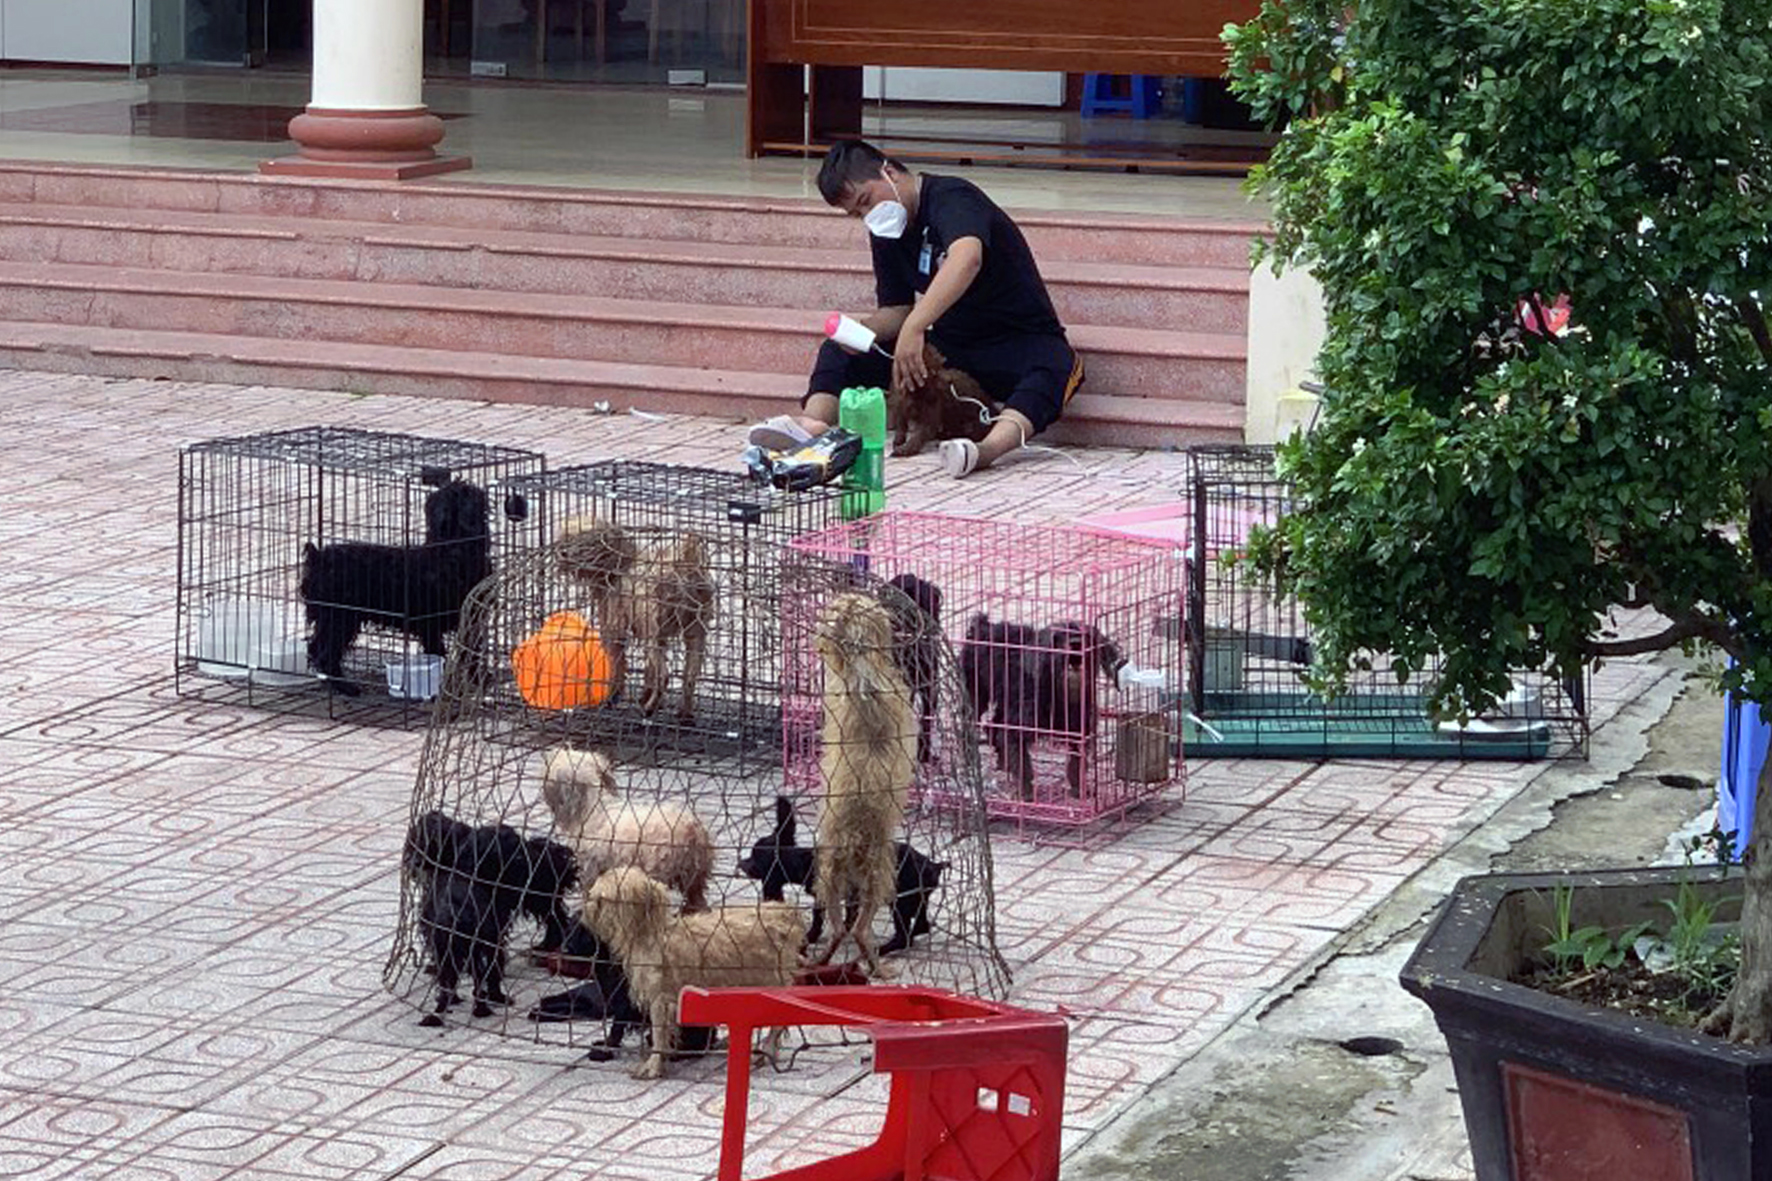 Vietnamese ward authorities provide temporary care for 12 dogs while owners receive COVID-19 treatment